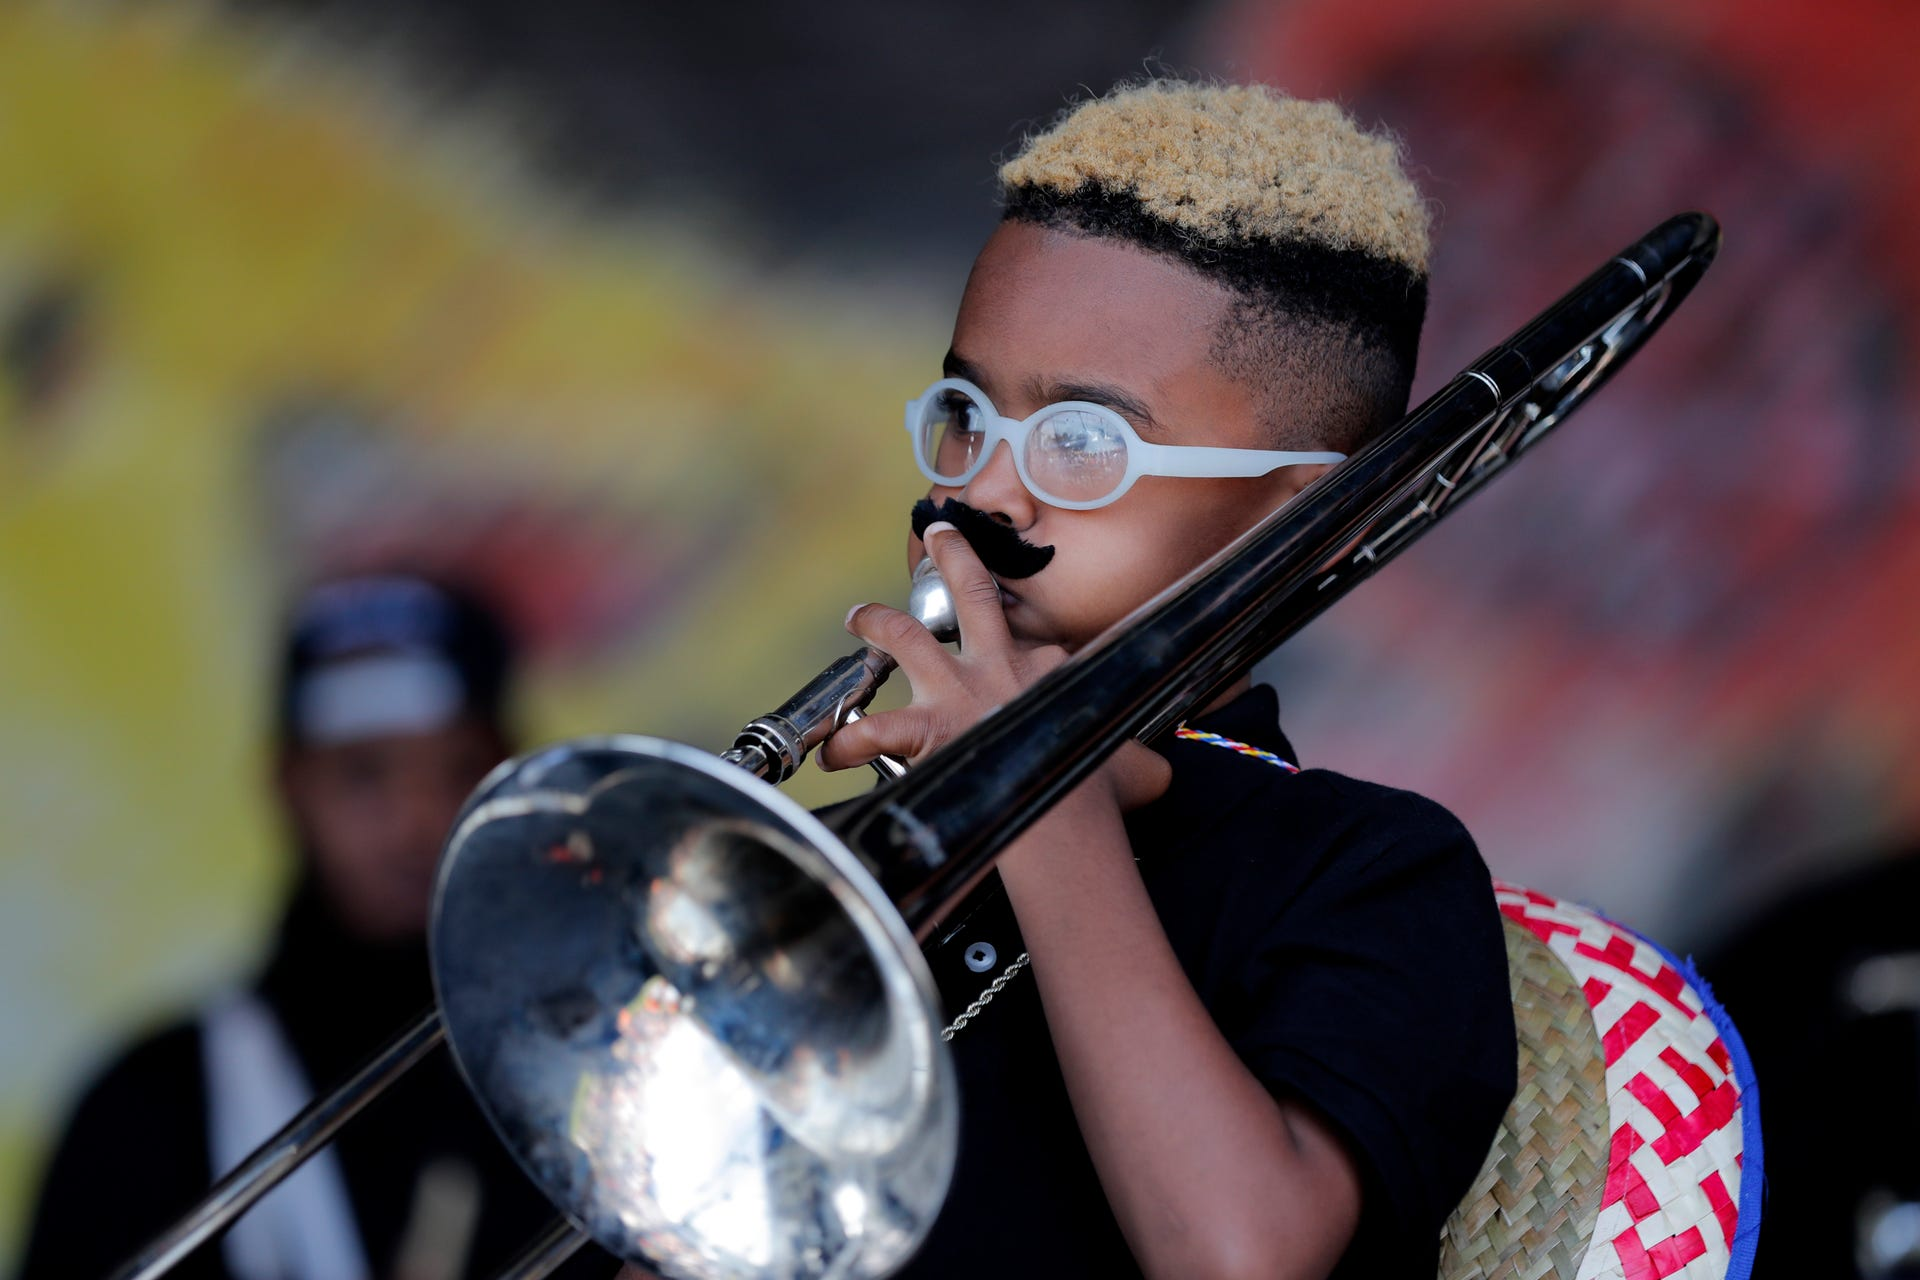 New Orleans Jazz Fest 2019 in photos: Scenes from the Big Easy